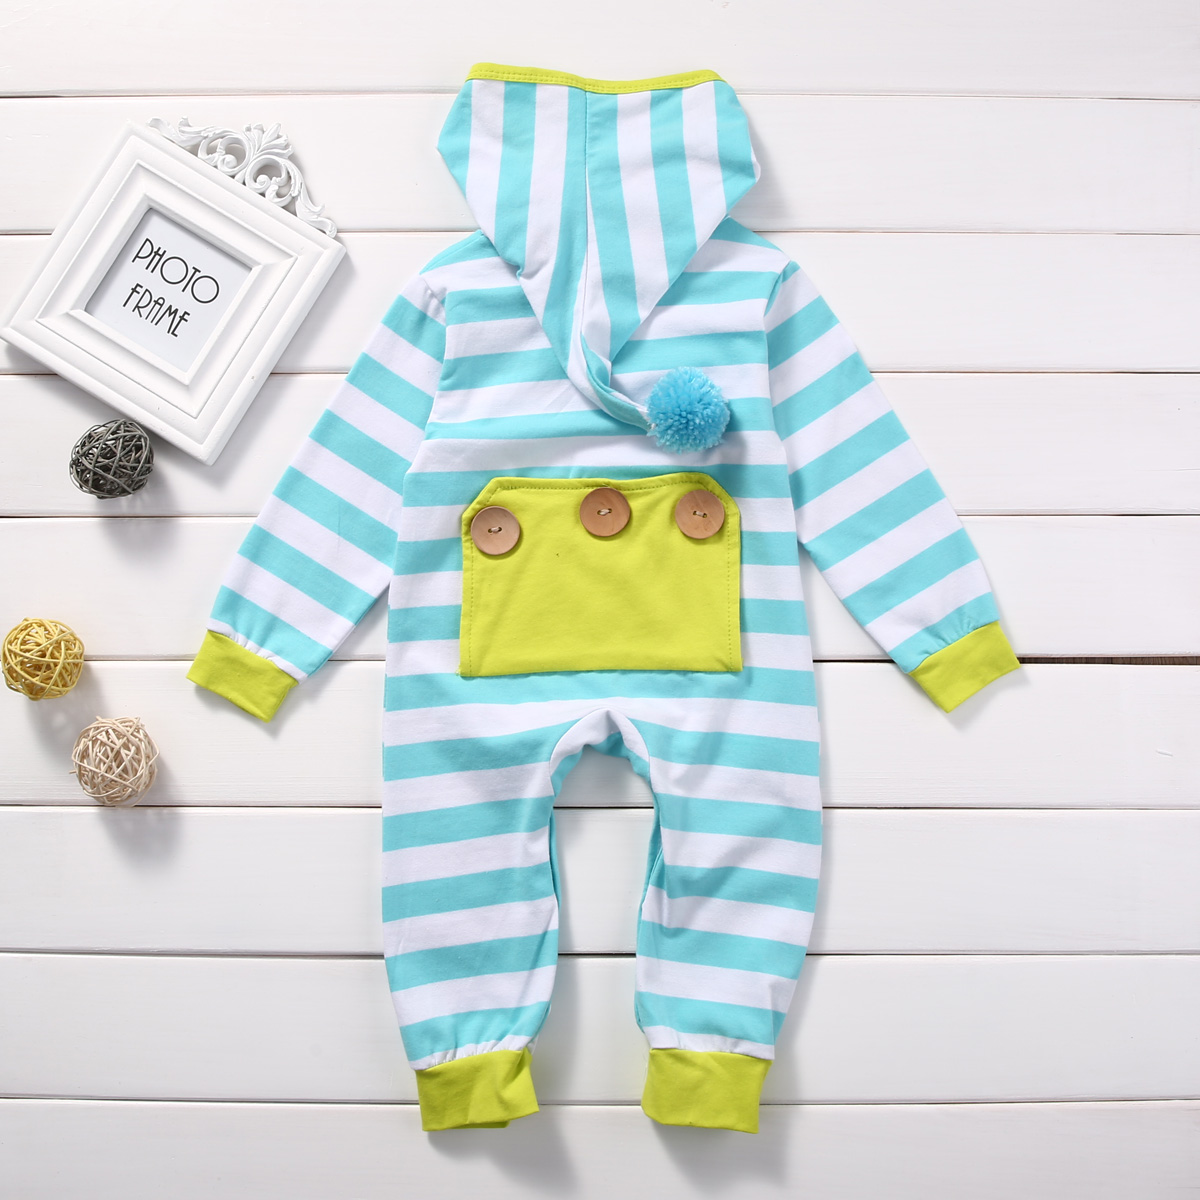 Newborn Infant Baby Boy Girl Cute Hooded Clothes Romper Long Sleeve striped Jumpsuit Outfit Rompers autumn winter baby girl rompers striped cute infant jumpsuit ropa long sleeve thicken cotton girl romper hat toddler clothes